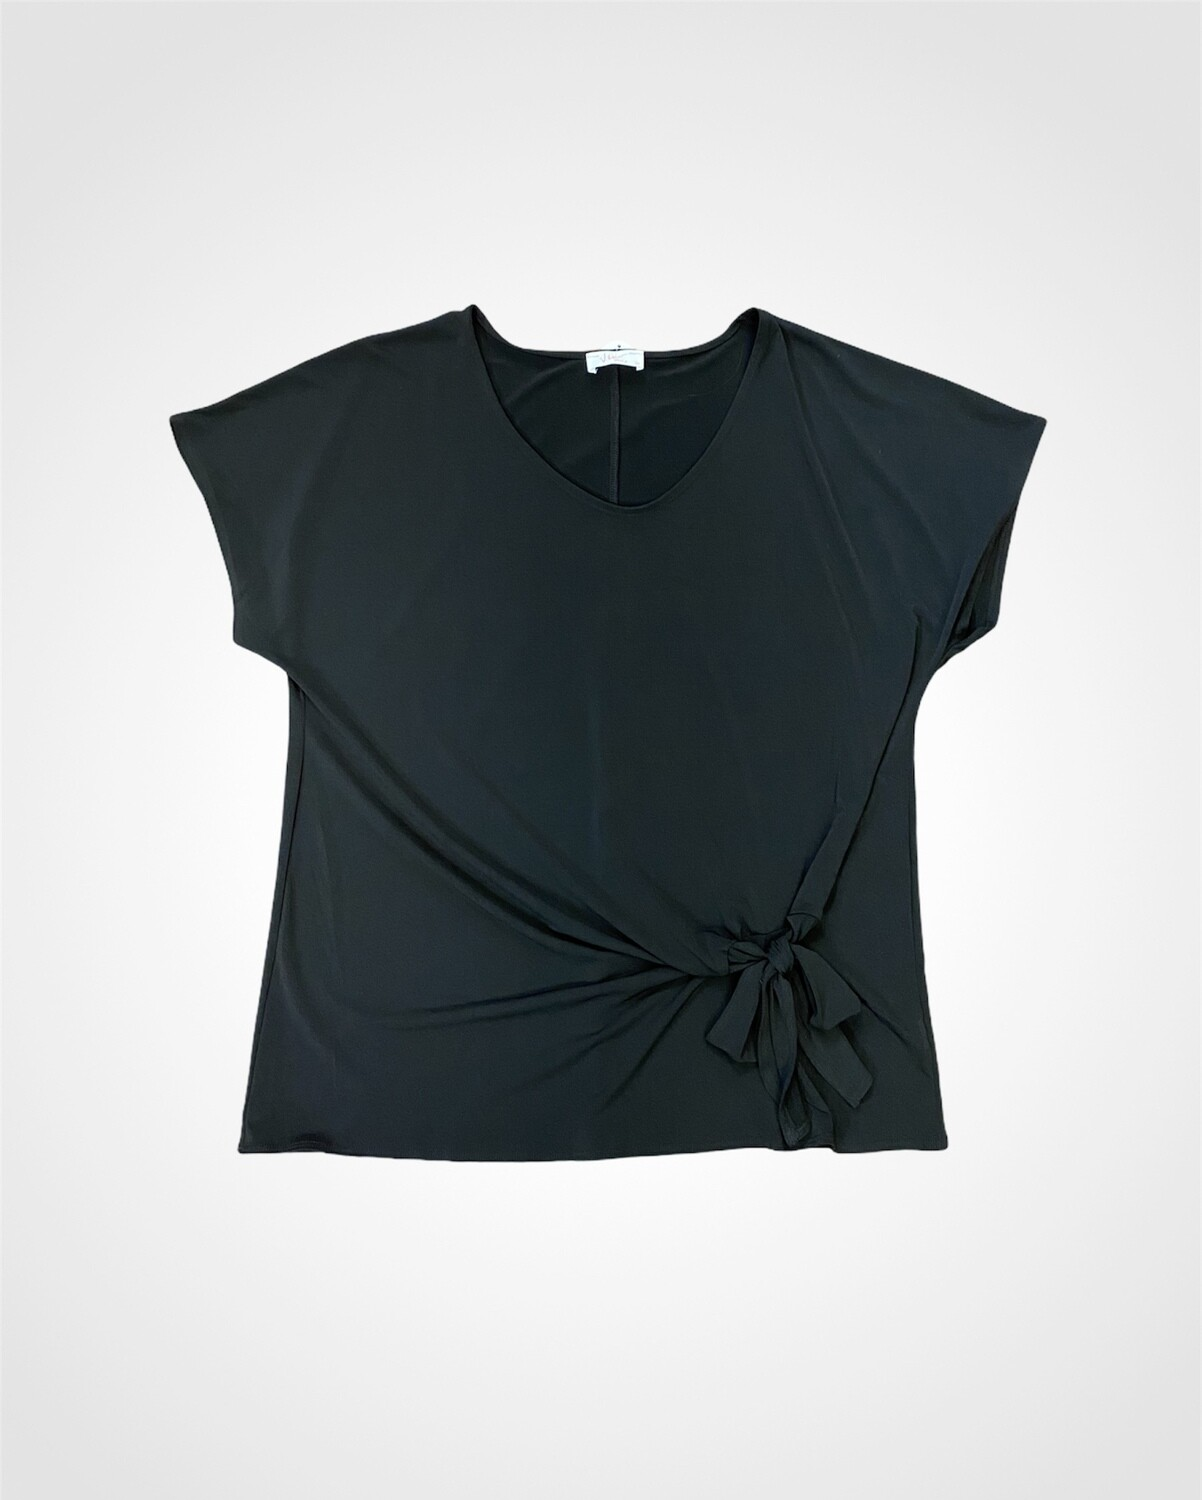 Black Knot Top